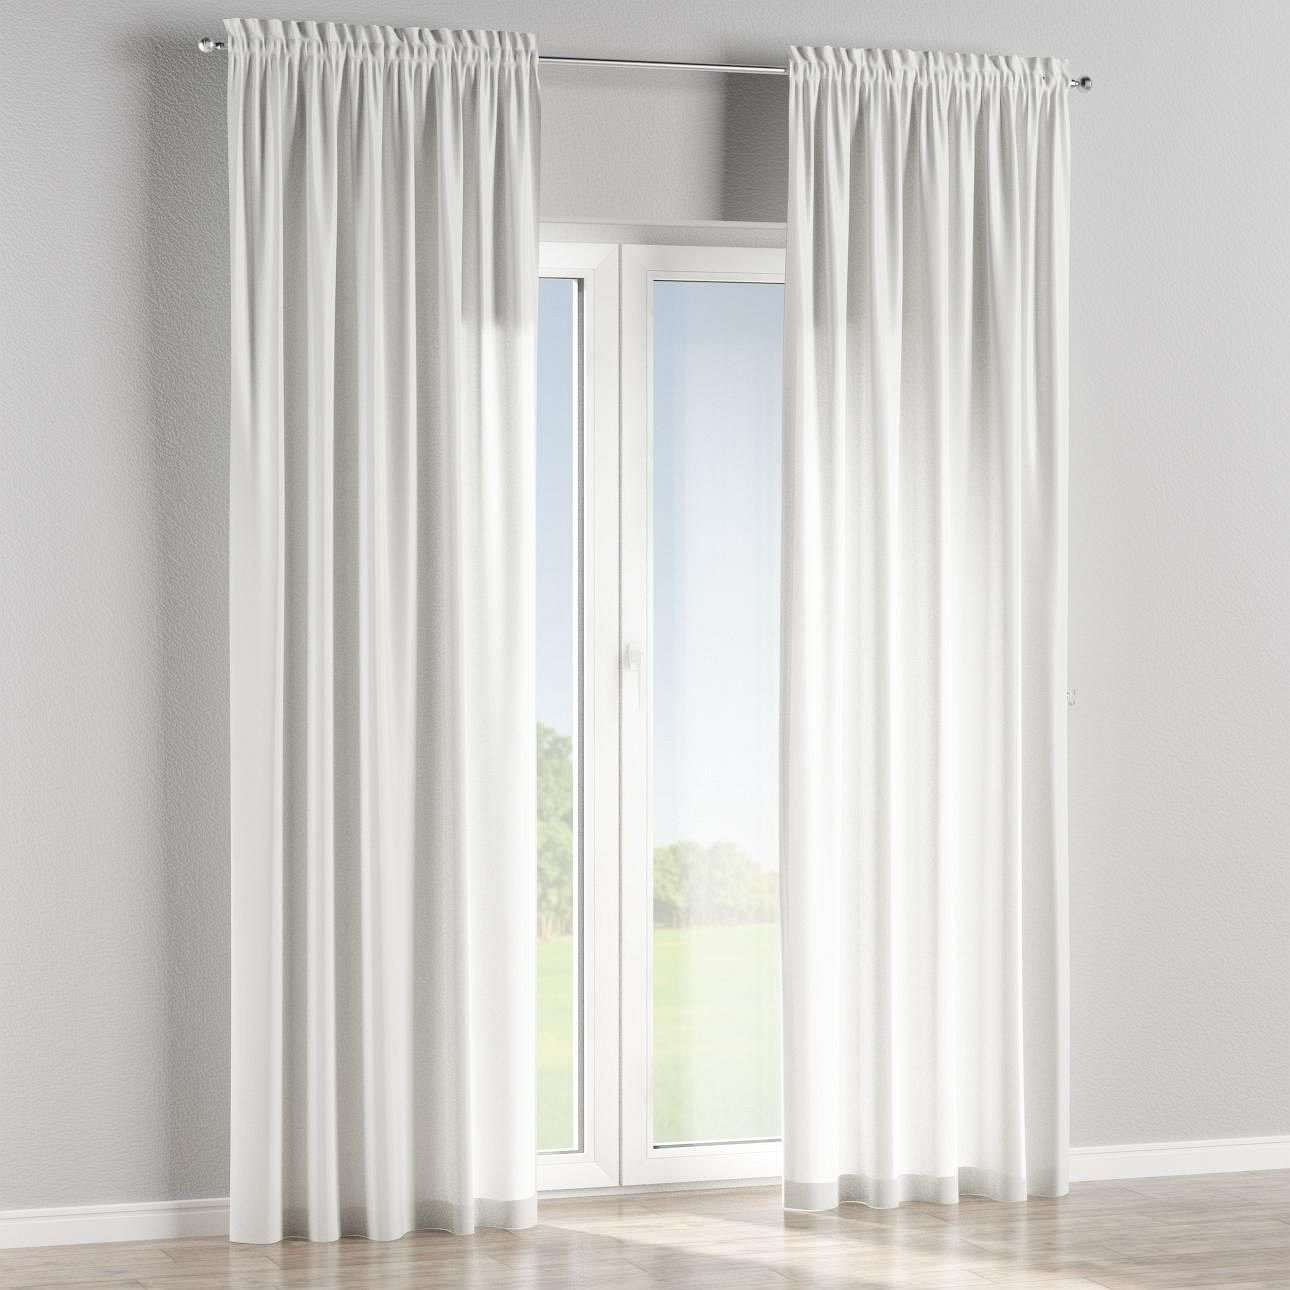 Slot and frill lined curtains in collection Cardiff, fabric: 136-21